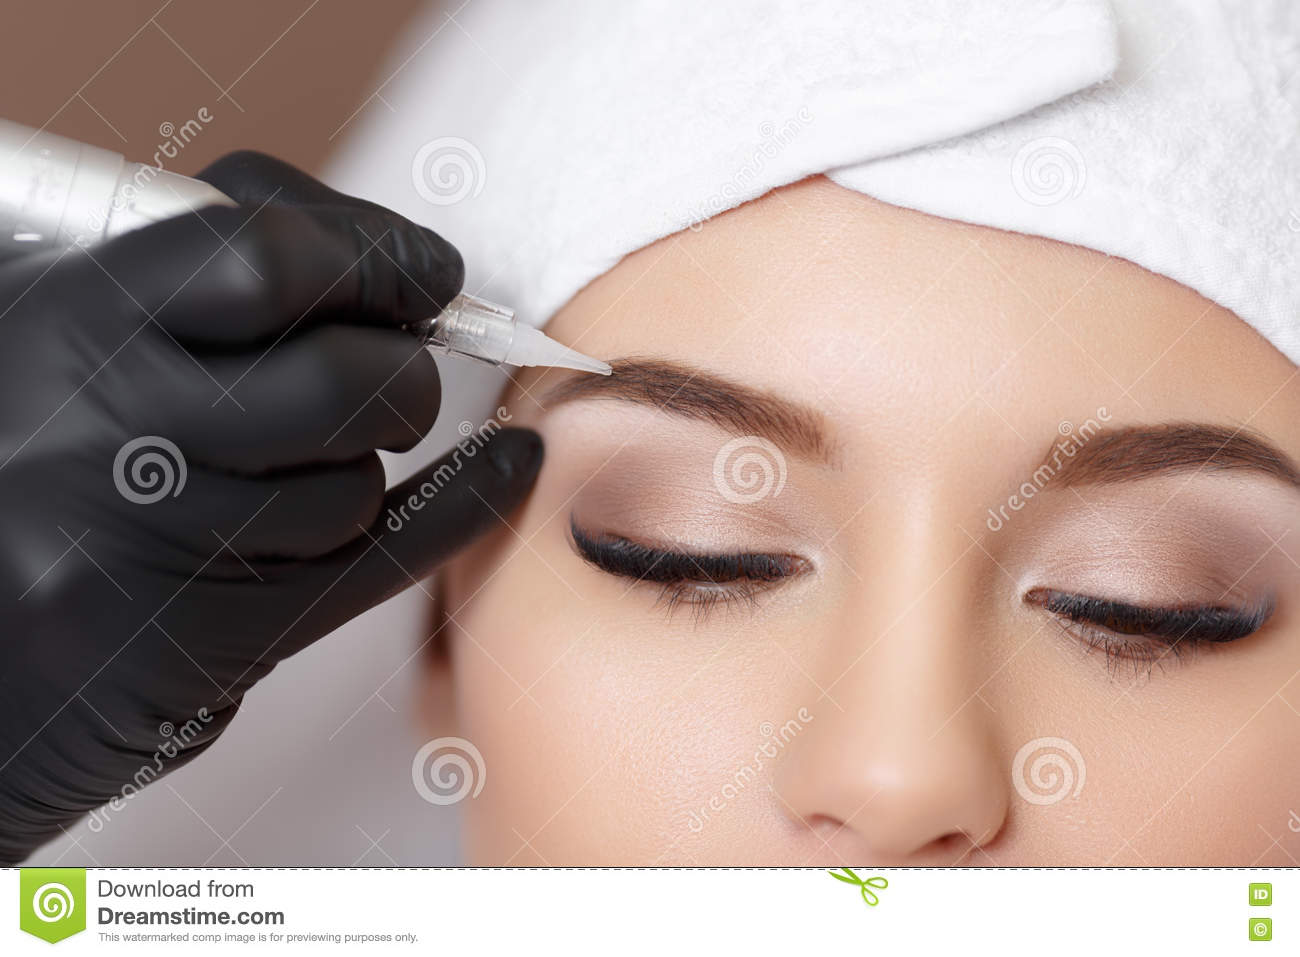 Permanent Makeup Tattooing Of Eyebrows Stock Photo Image Of